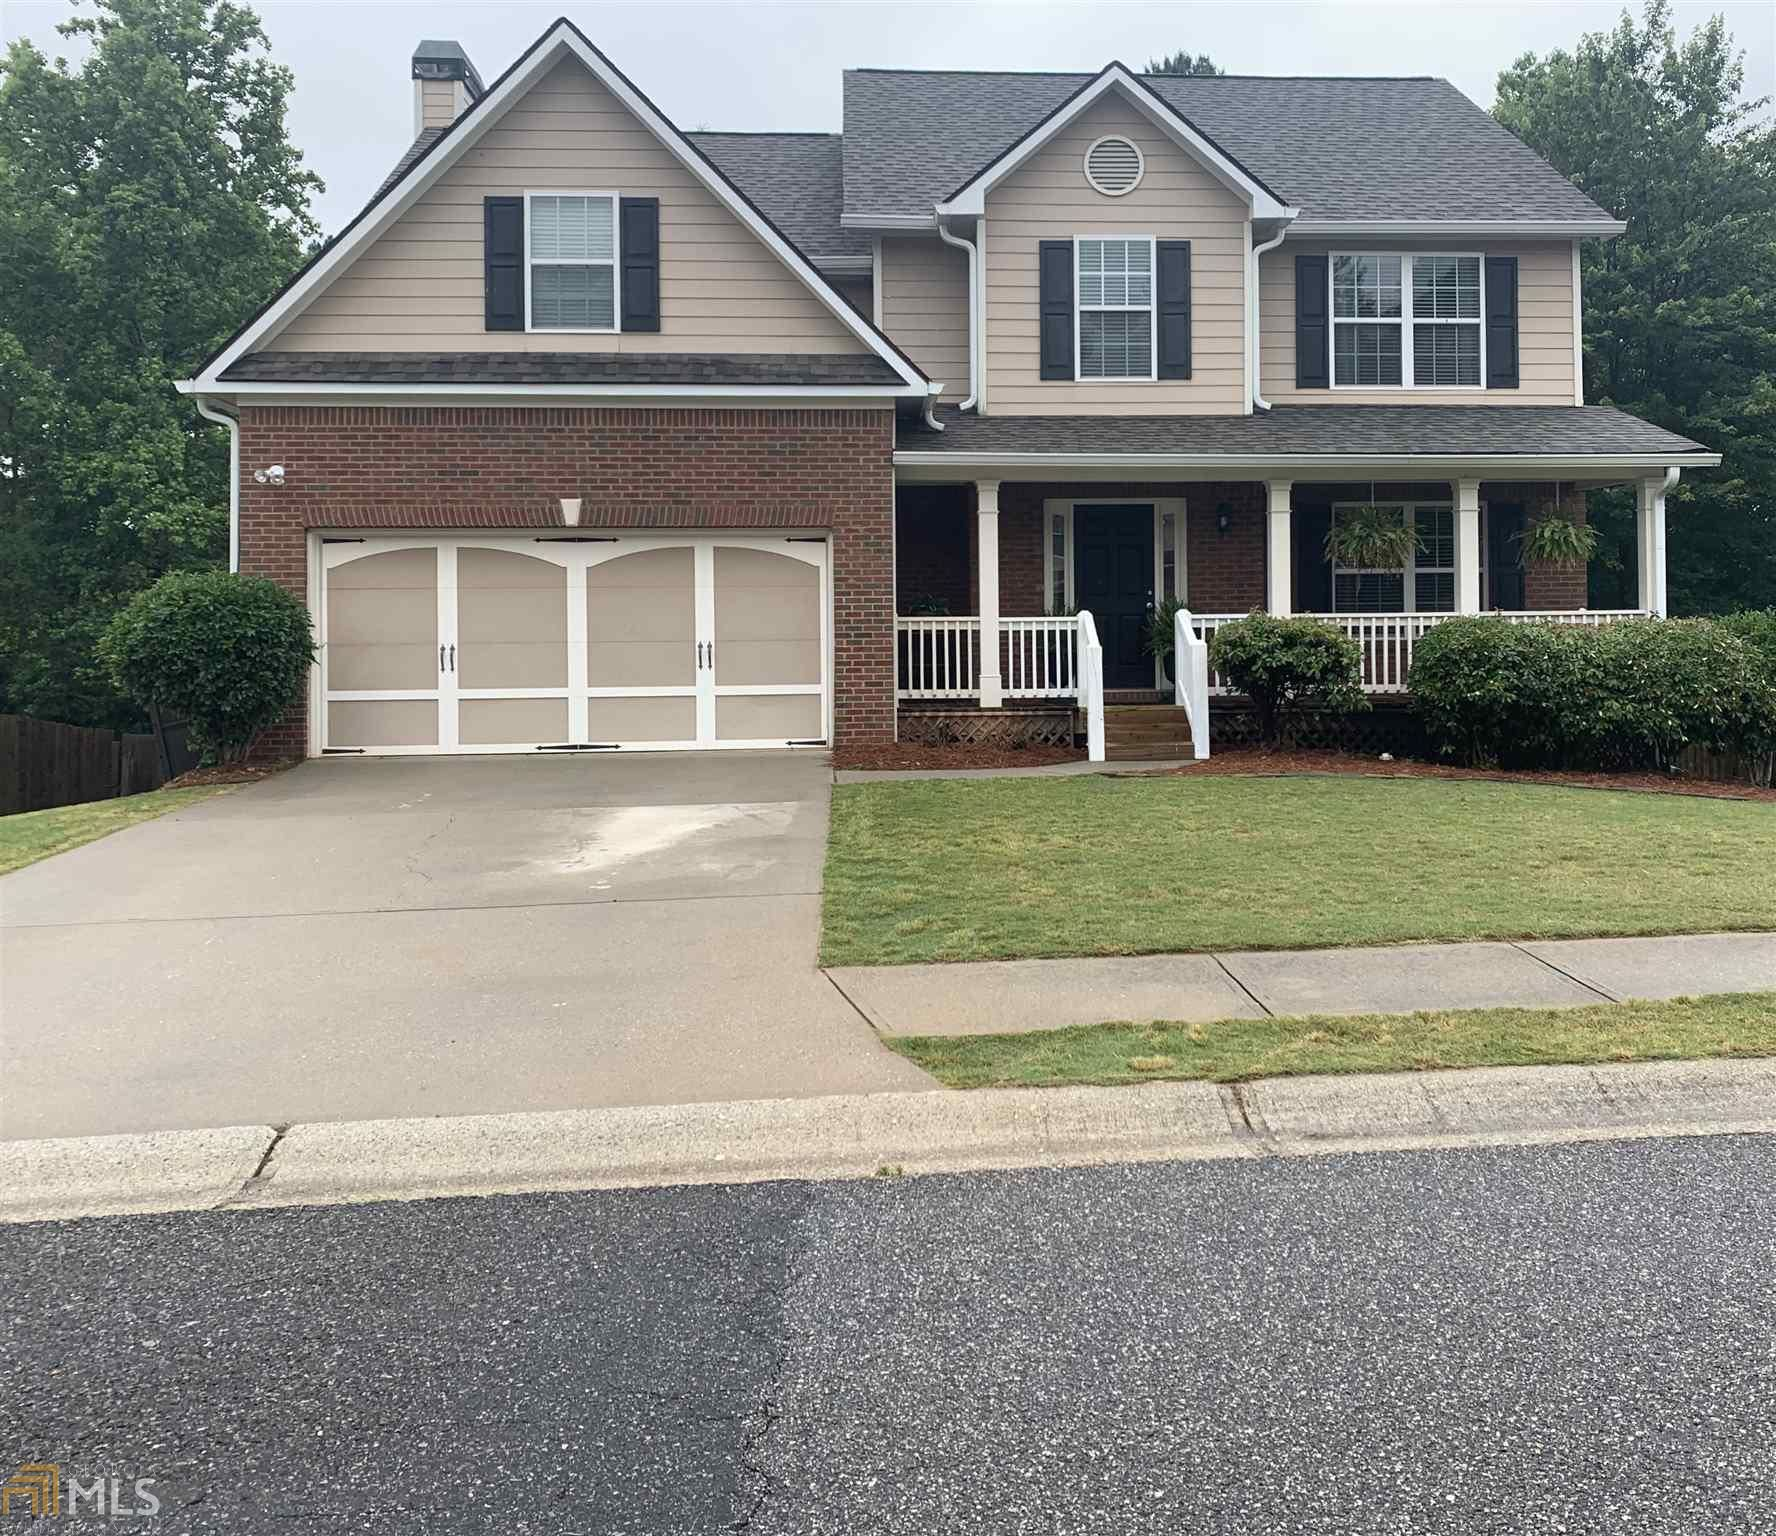 350 Andrew Ridge Dr, Jefferson, GA 30549 - #: 8789992